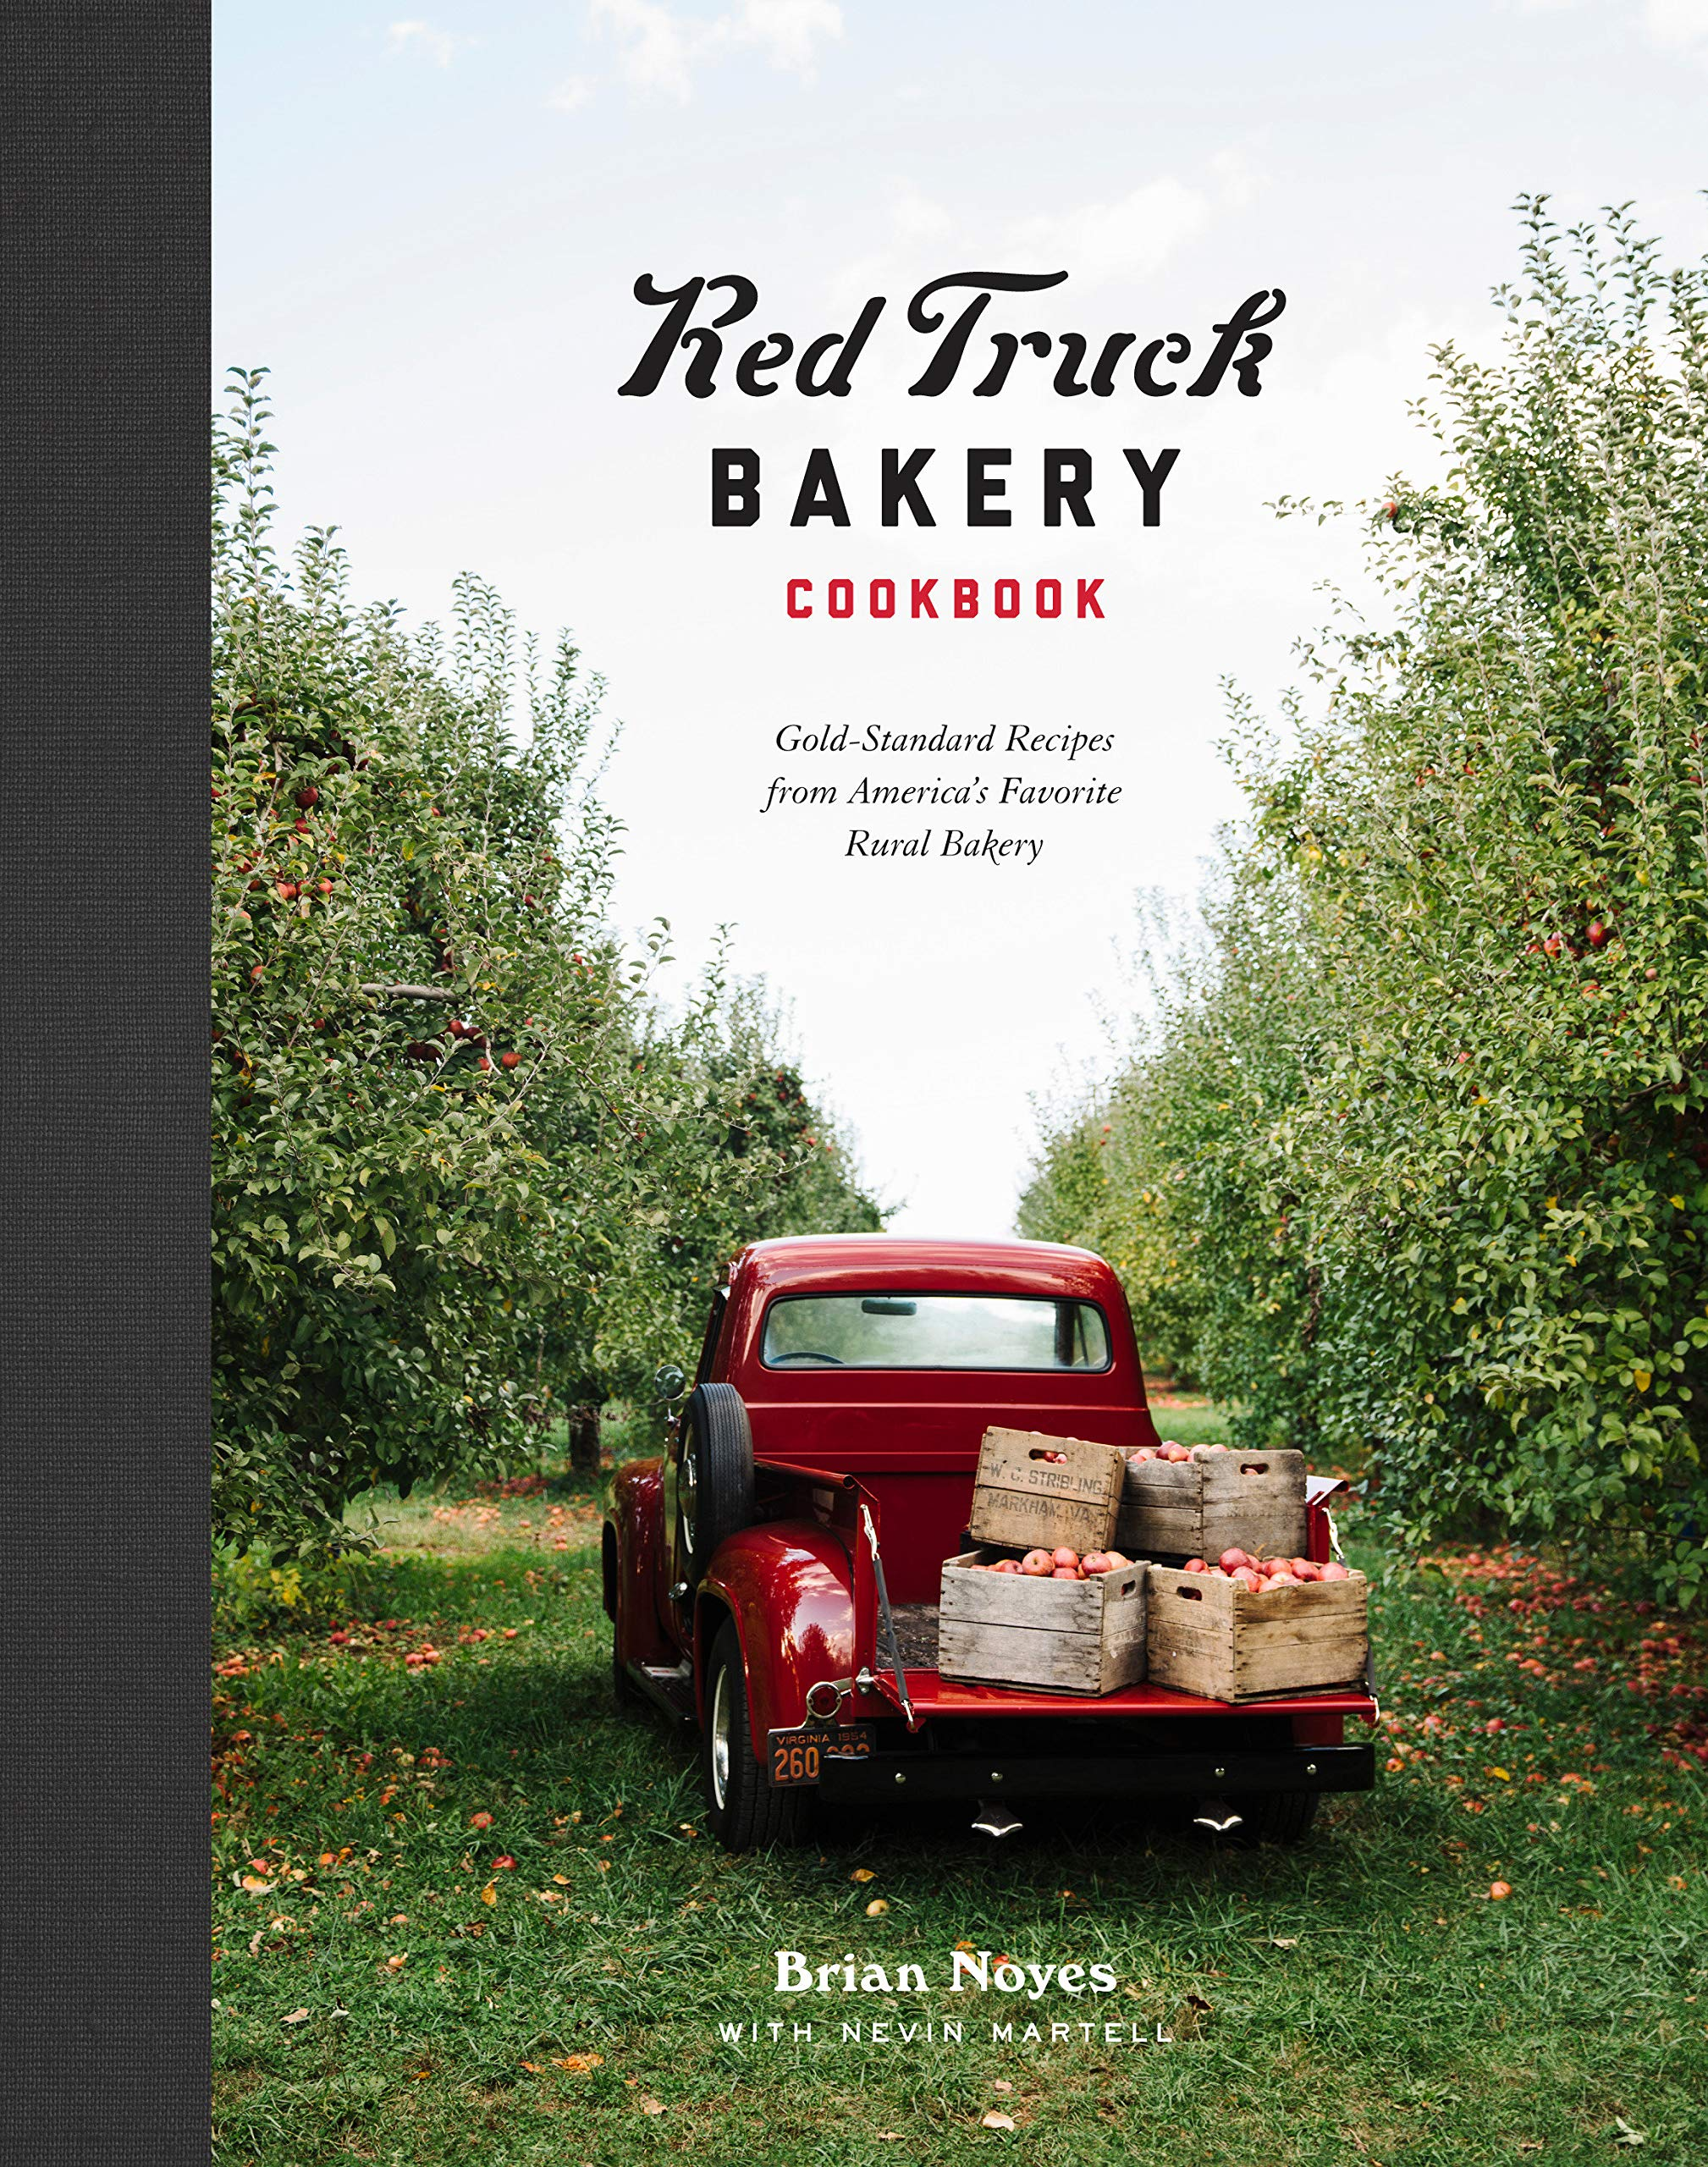 Red Truck Bakery Cookbook from Brian Noyes and Nevin Martell // Price: $25 // Buy online // amazon.com // (Image: Clarkson Potter Publishers)